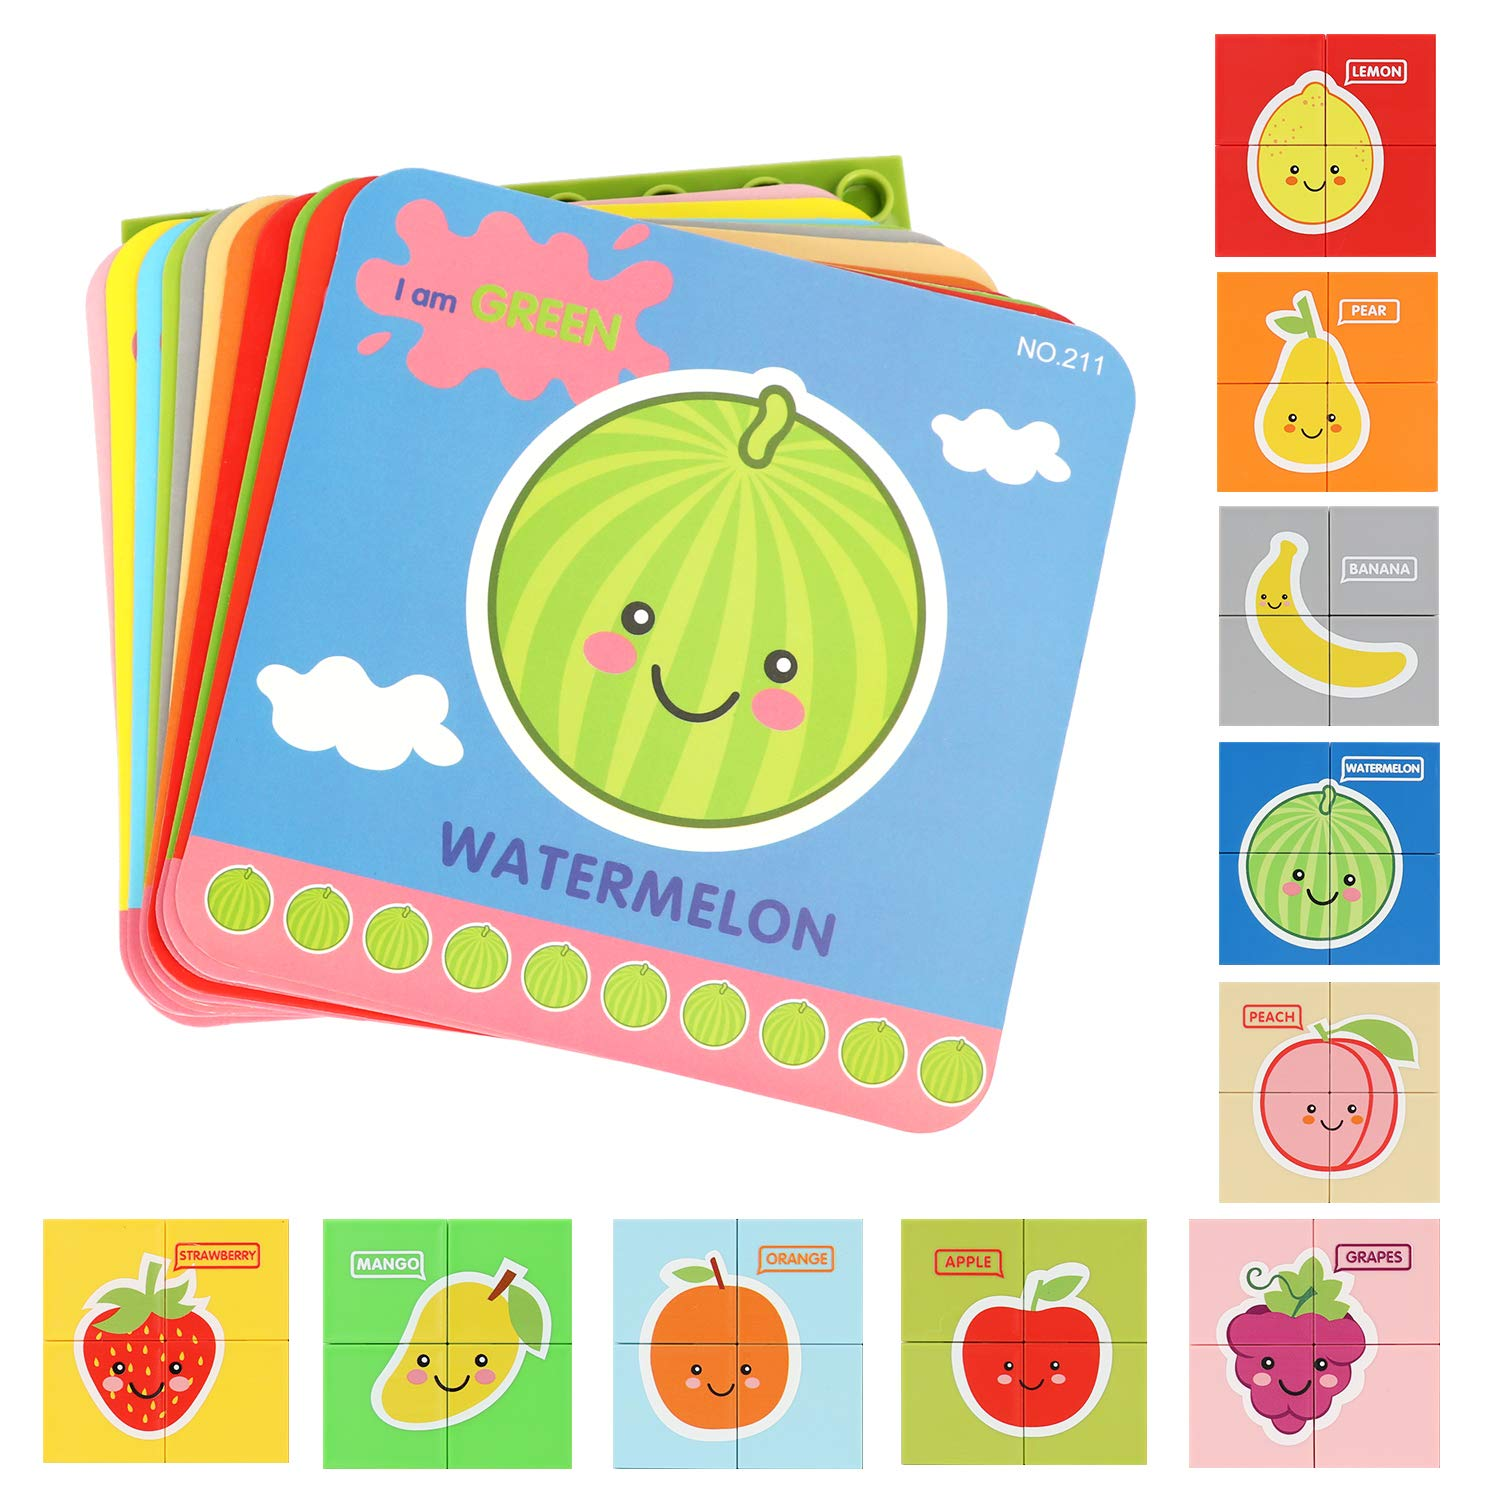 Wooden Jigsaw Puzzles with Learning Flash Cards, Wooden Block Puzzle Peg Board Set Educational Preschool Montessori Toddler Toys Gift for Boy Girl, Matching Canvas Bag, Colorful Vehicle Puzzle Set